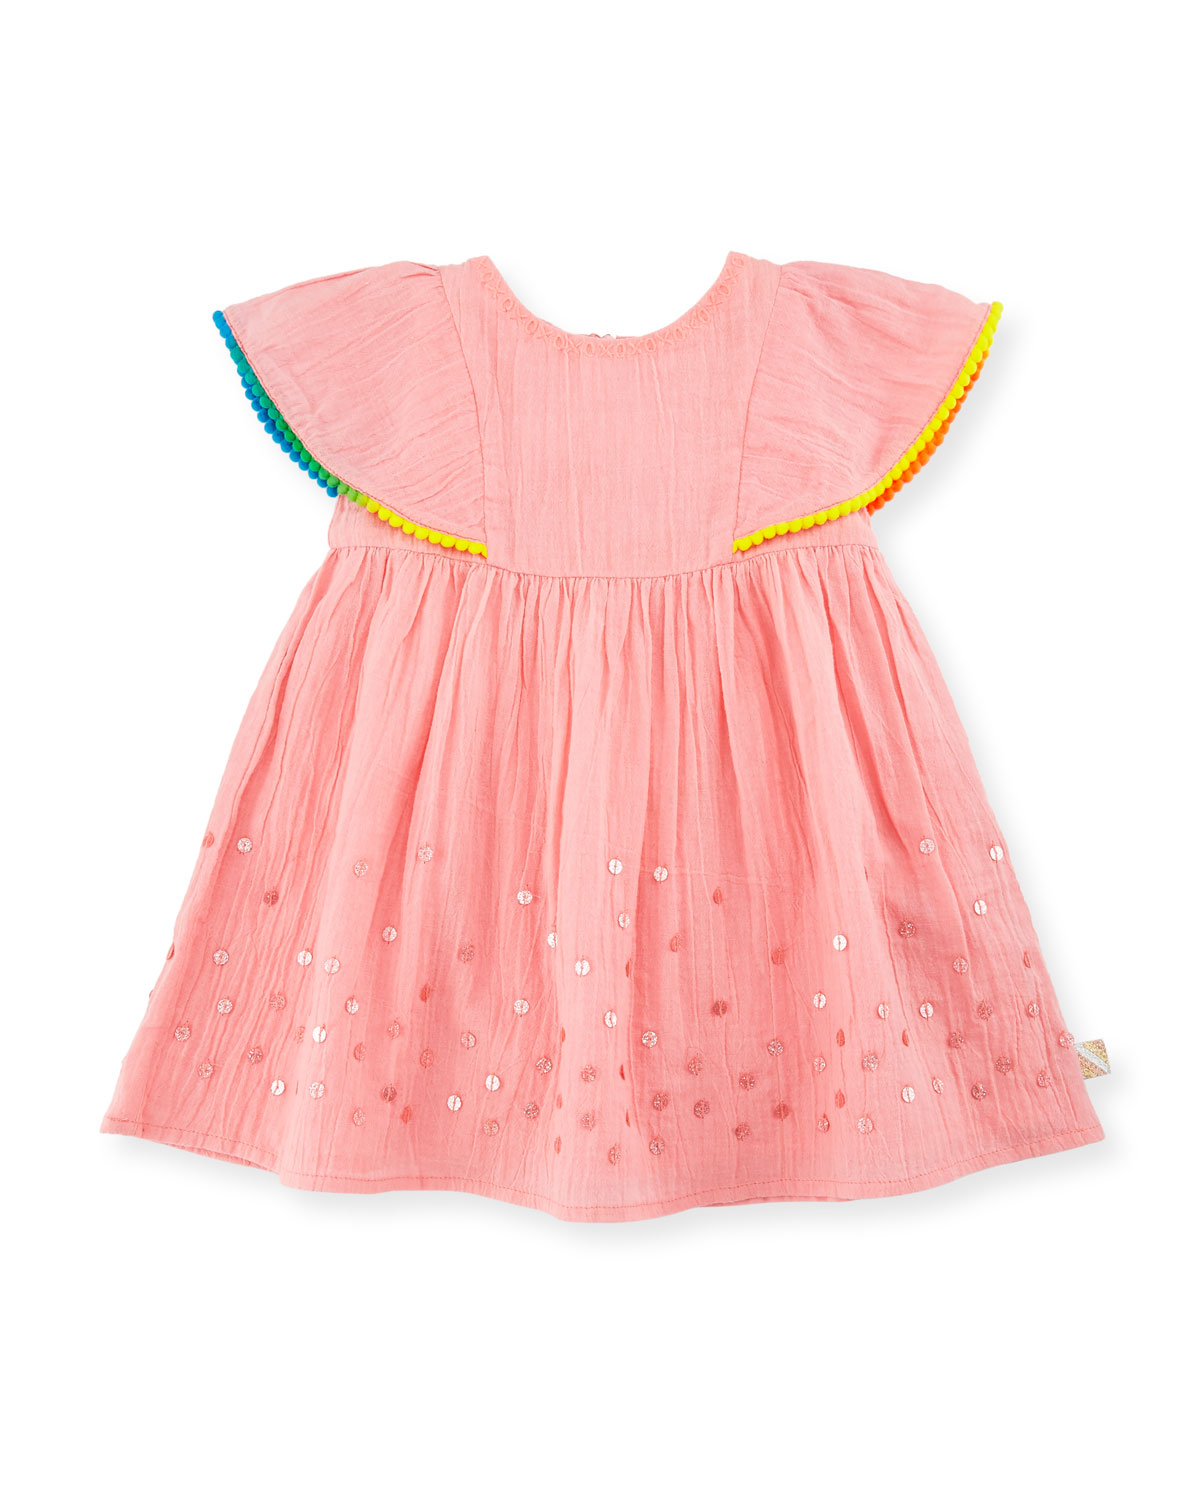 Cape-Sleeve Crinkled Sequin Dress, Pink, Size 12-18 Months